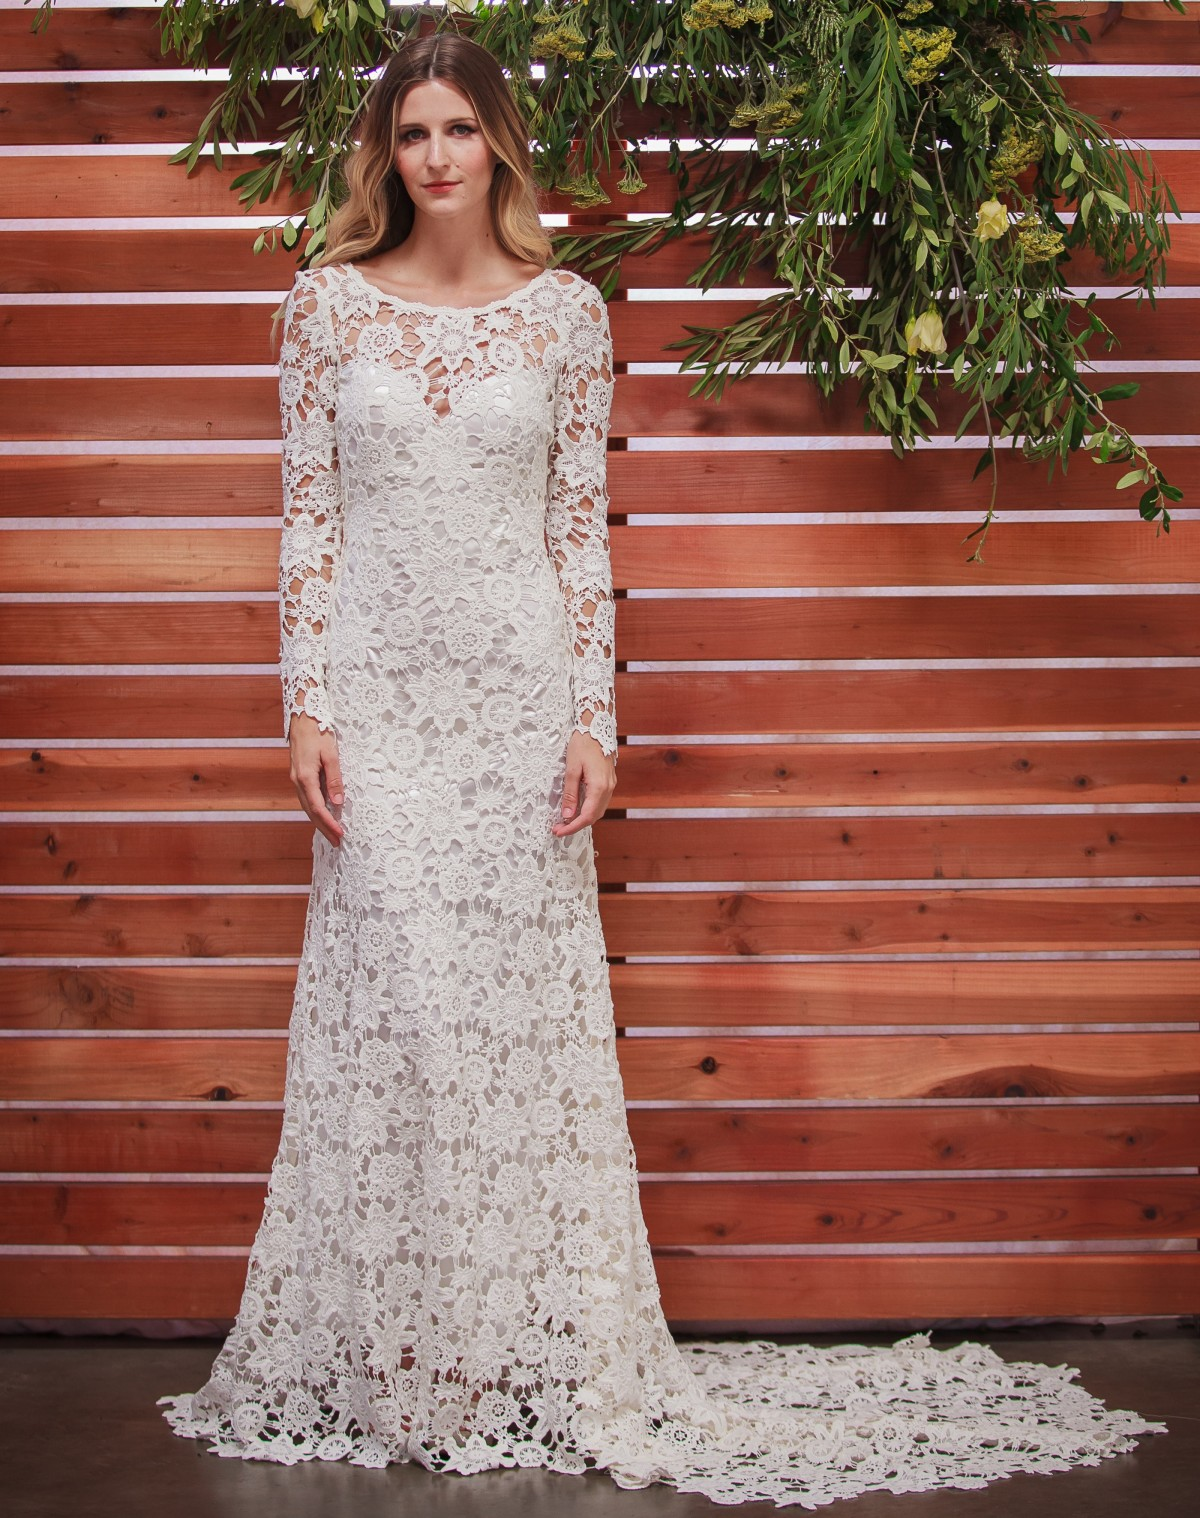 Clover Crochet Lace Boho Wedding Dress Dreamers And Lovers